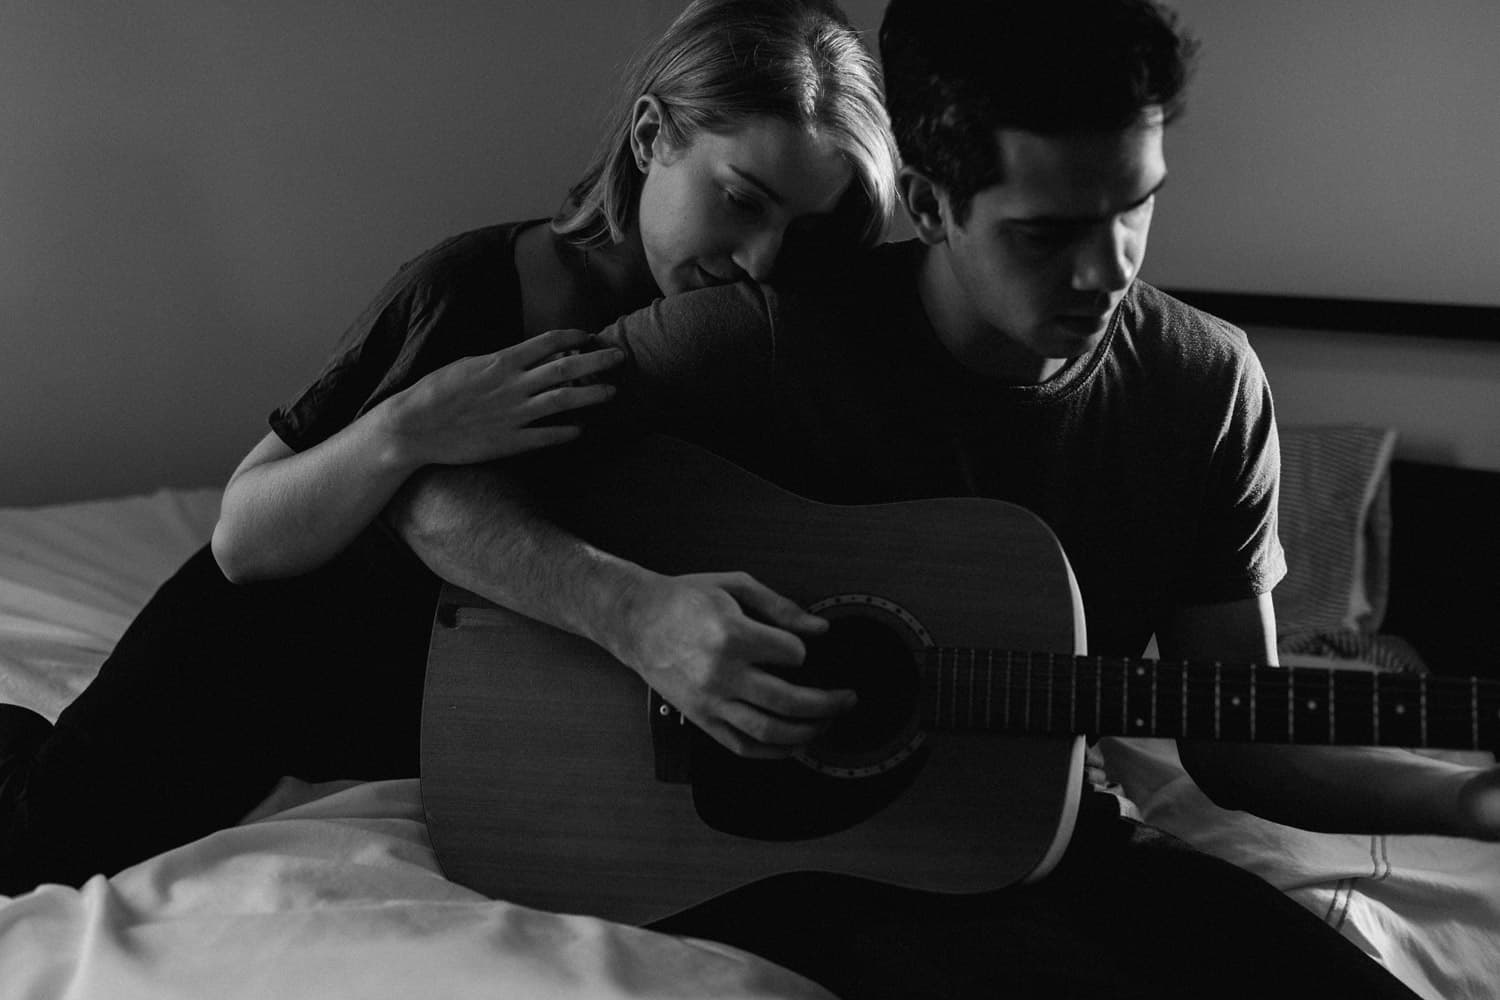 couple plays music together during in-home portrait session